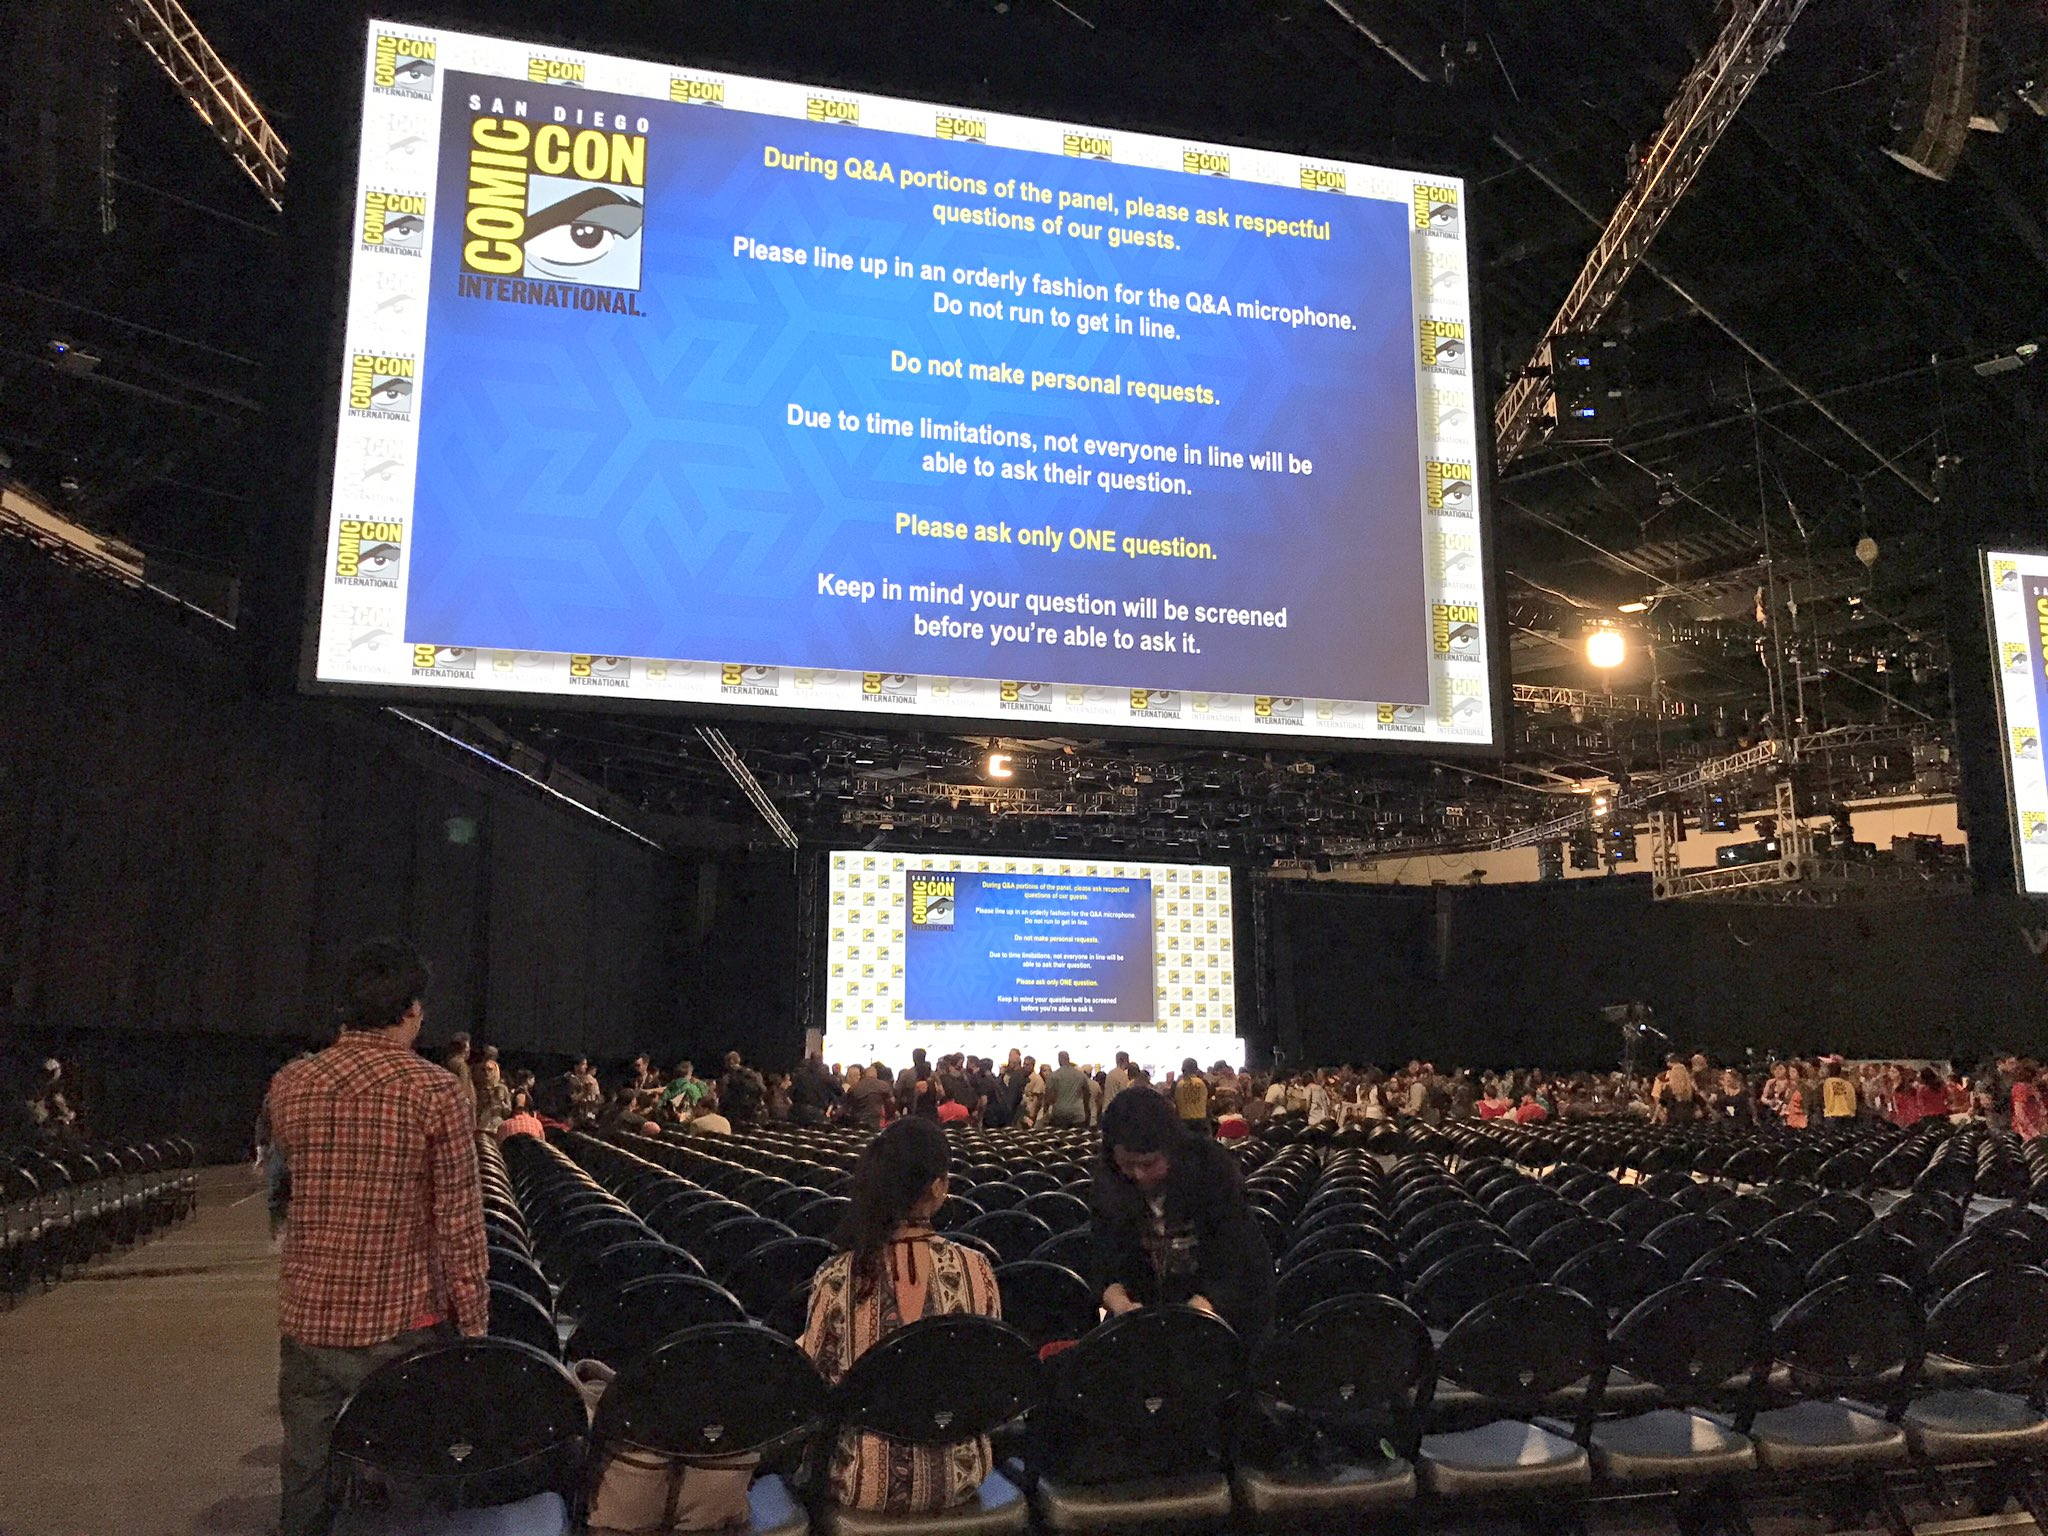 The scene inside Hall H as the crowds enter before the big day #SDCC https://t.co/3LkYj9n393